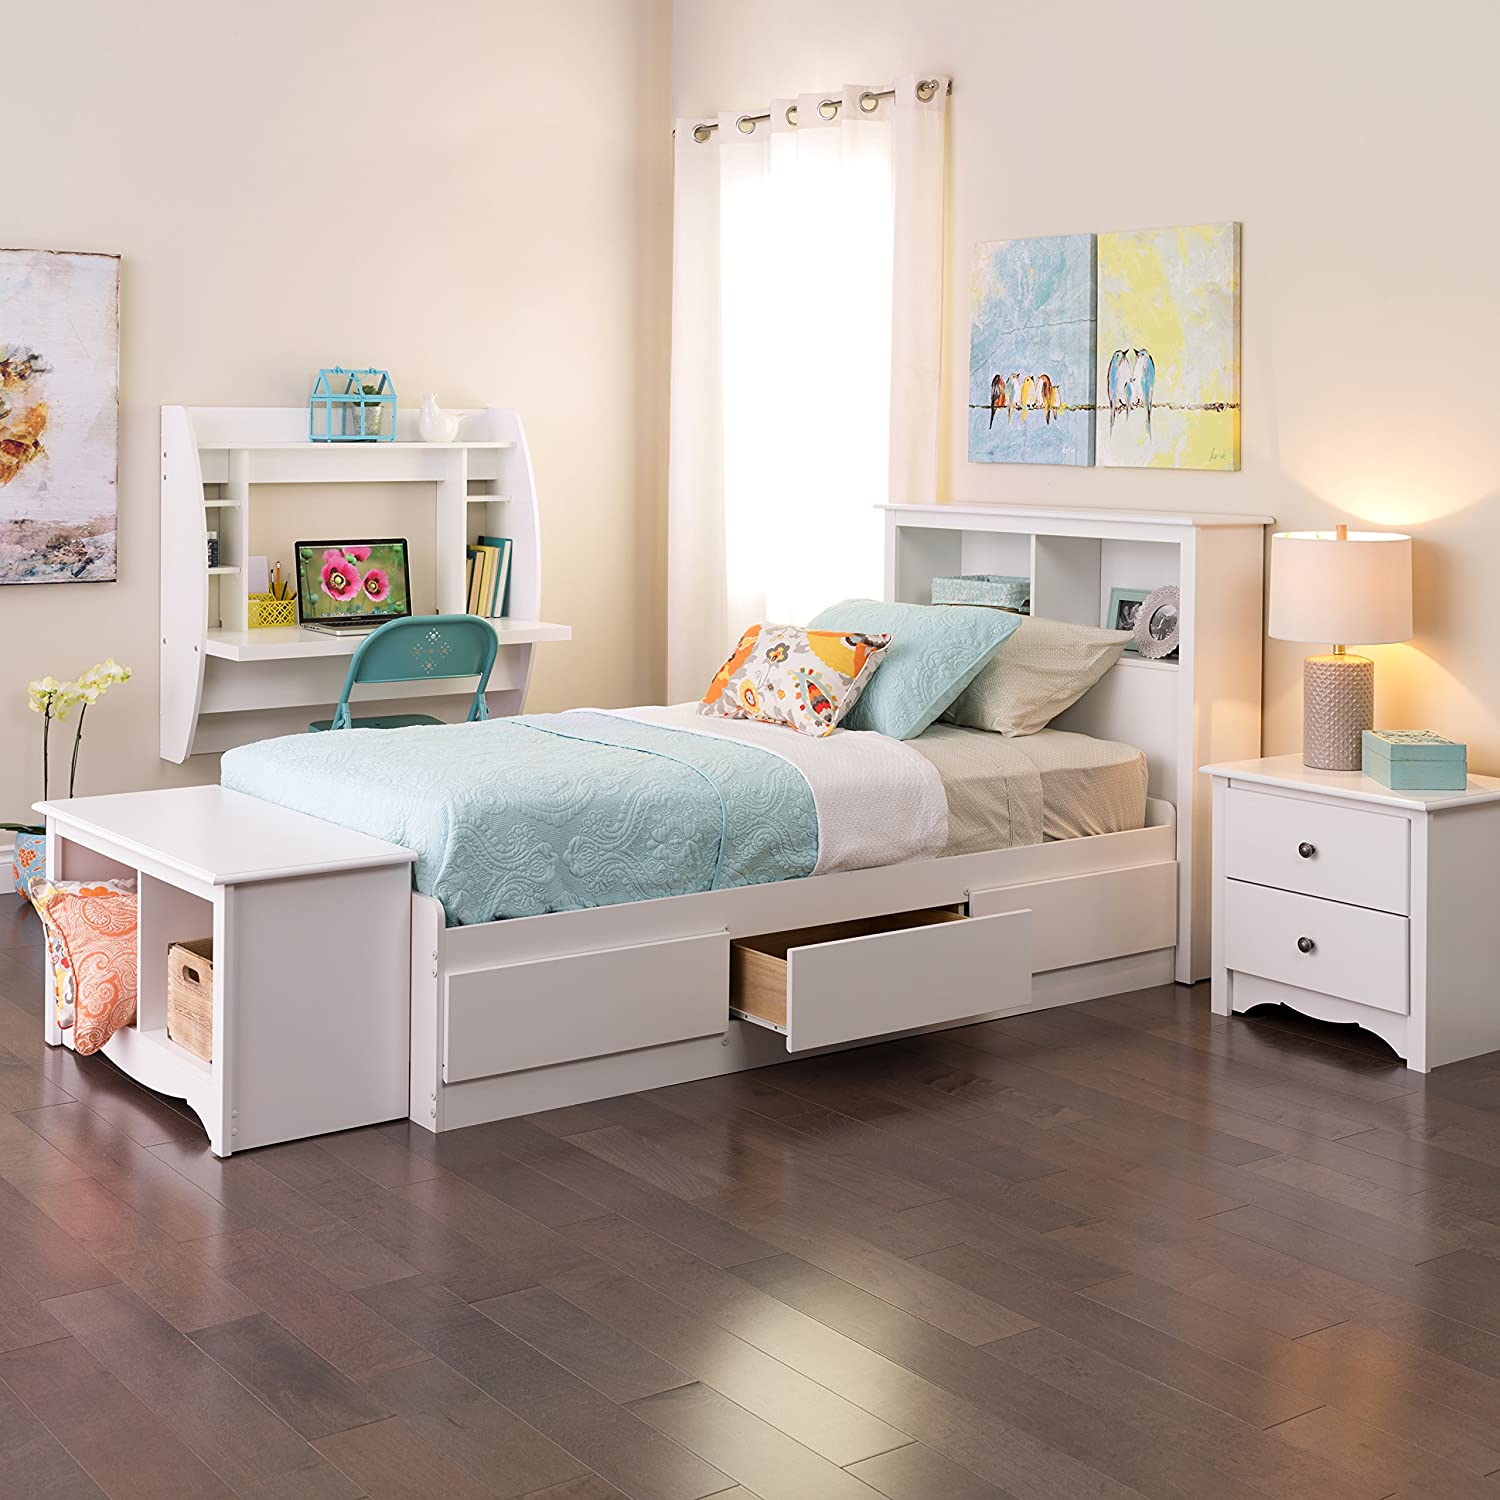 co drawers bedroom trundles bed with storage drawer furniture company under handmade beautiful simple kids the by